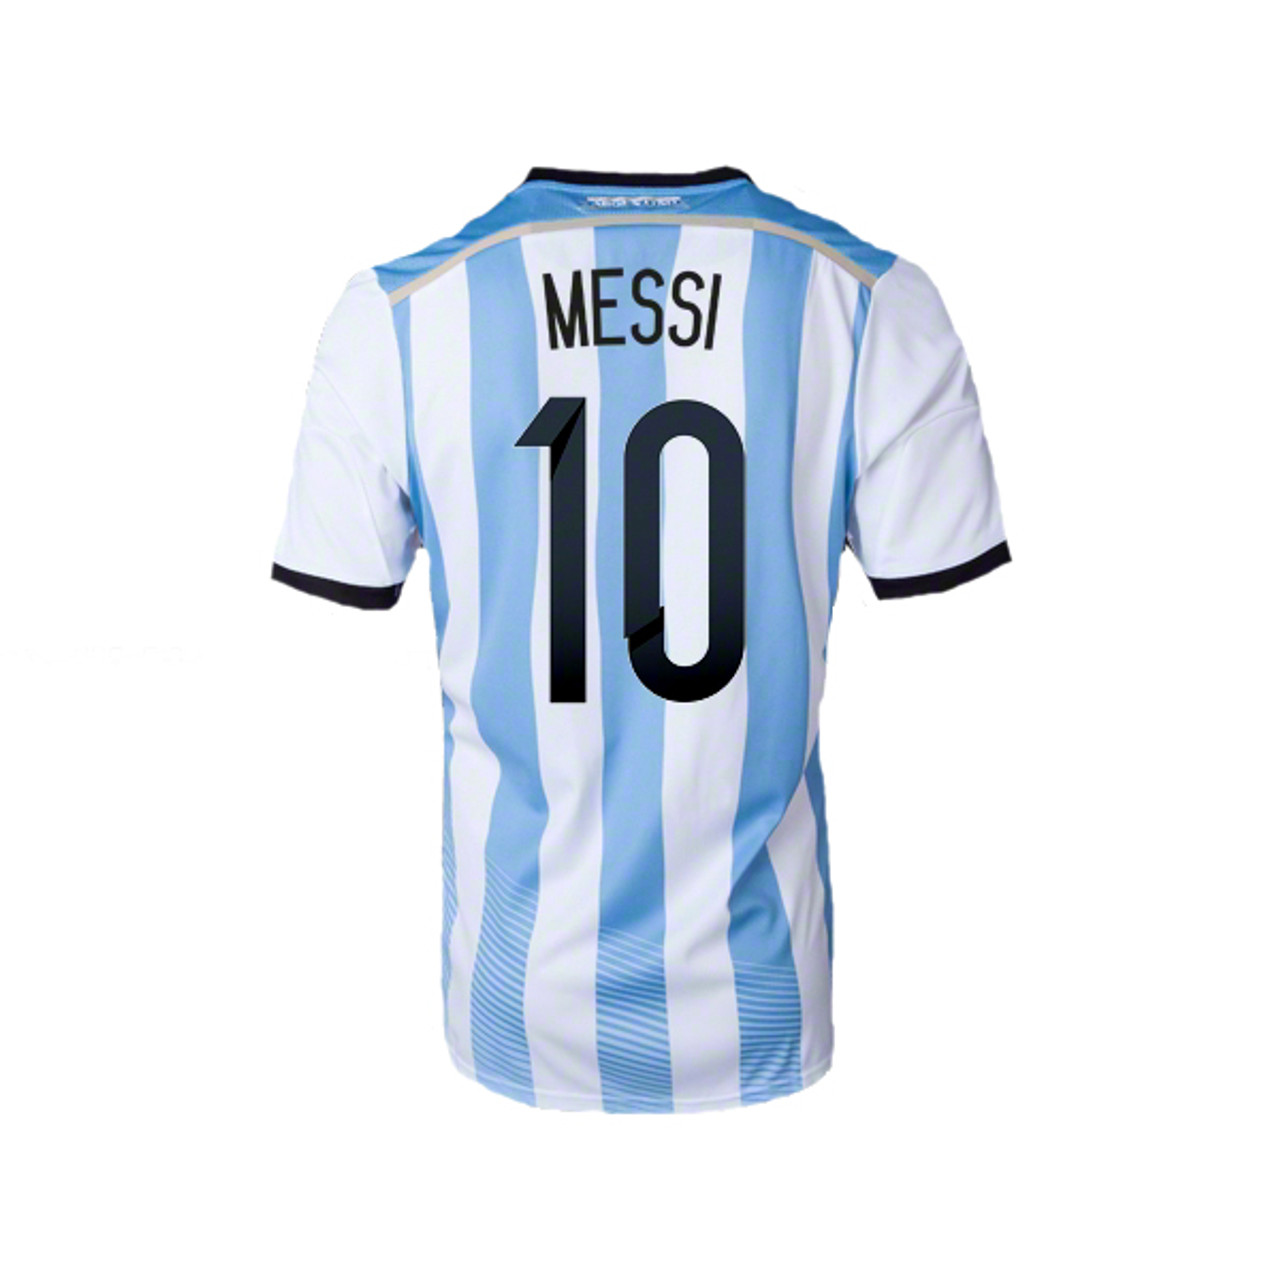 7ae8464733517 ADIDAS ARGENTINA WORLD CUP 2014 HOME `MESSI` JERSEY - Soccer Plus